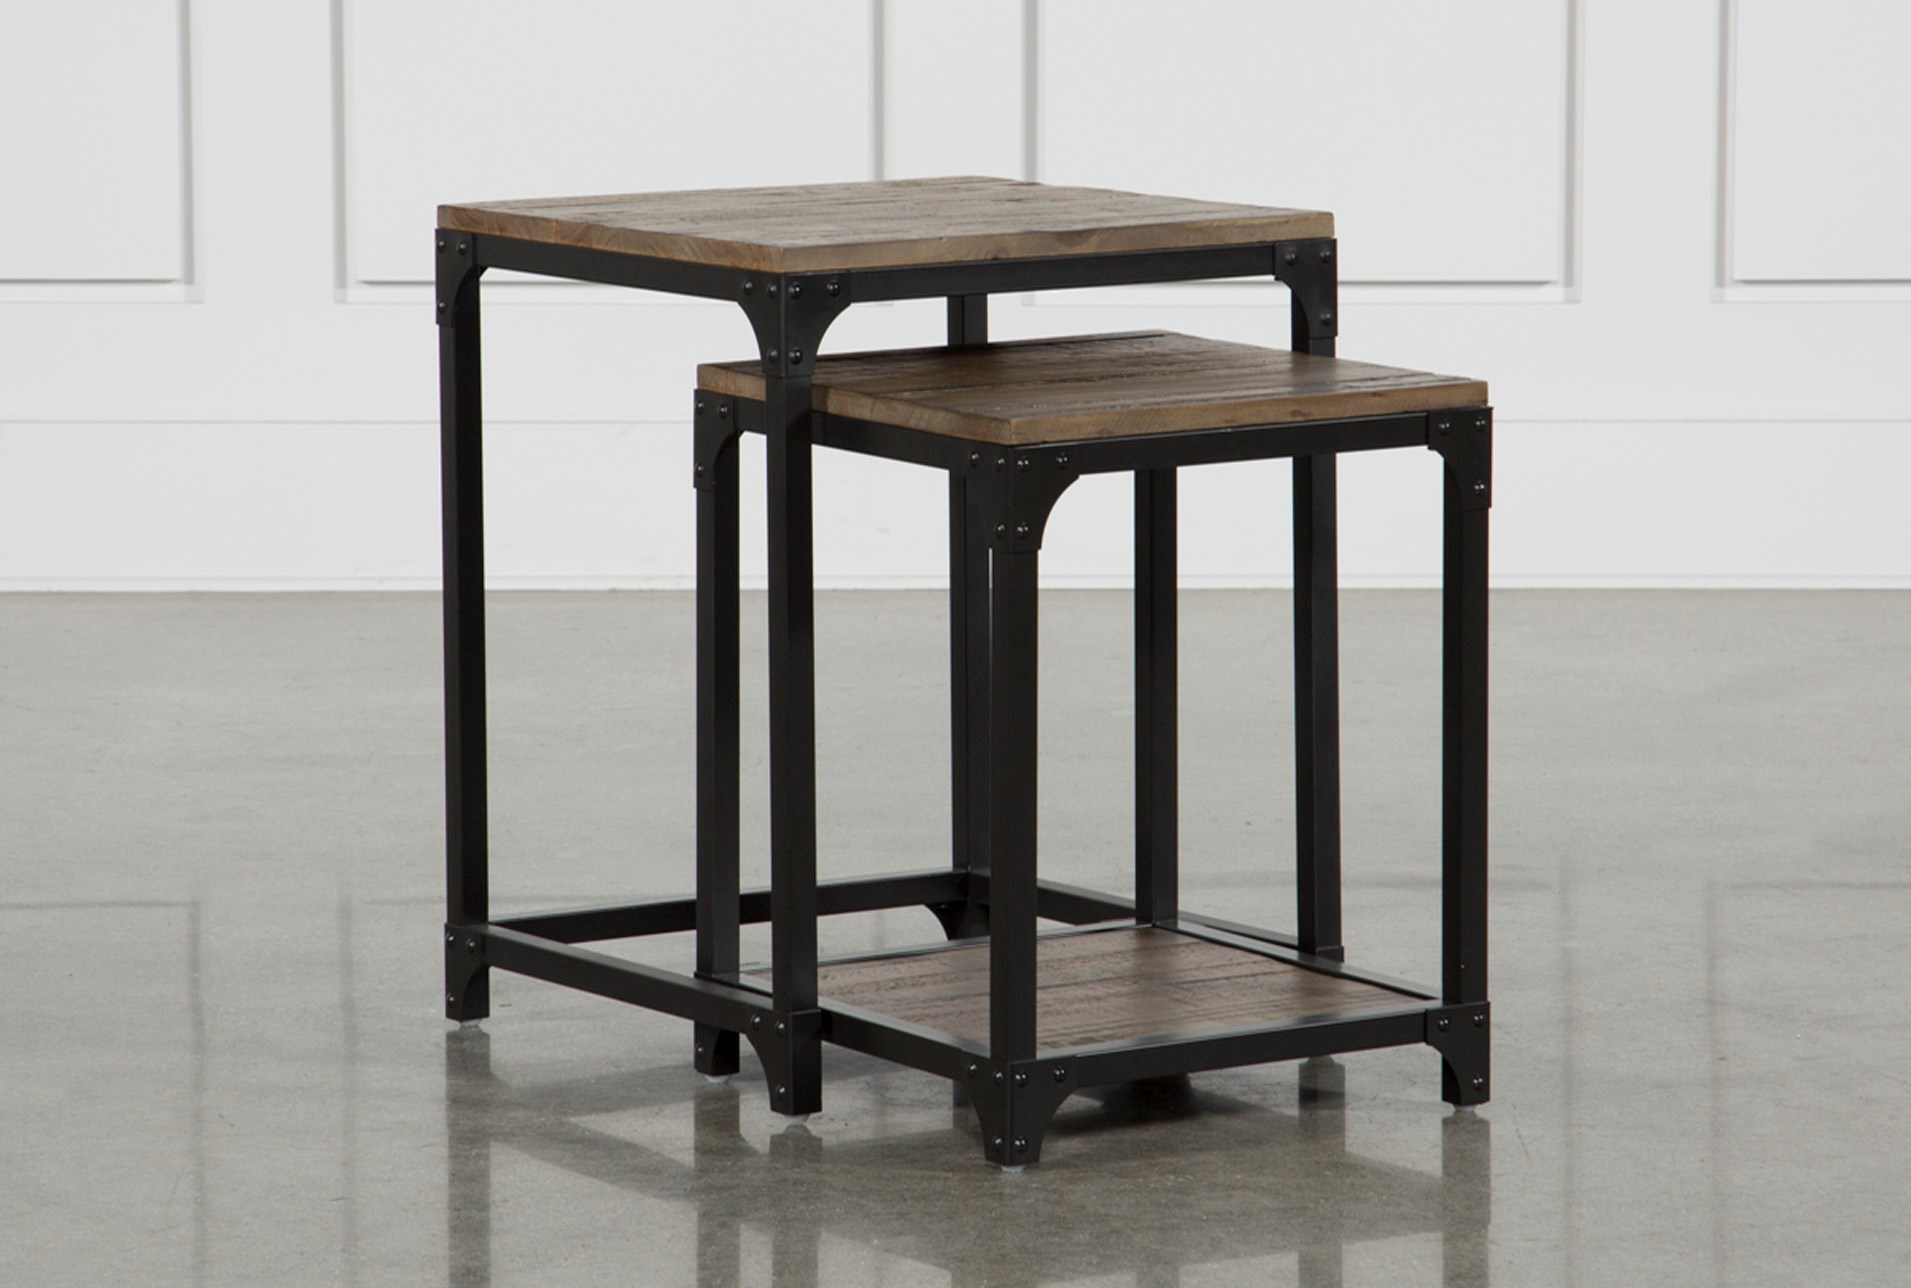 nesting end tables. Foundry Nesting End Tables (Qty: 1) Has Been Successfully Added To Your Cart. T